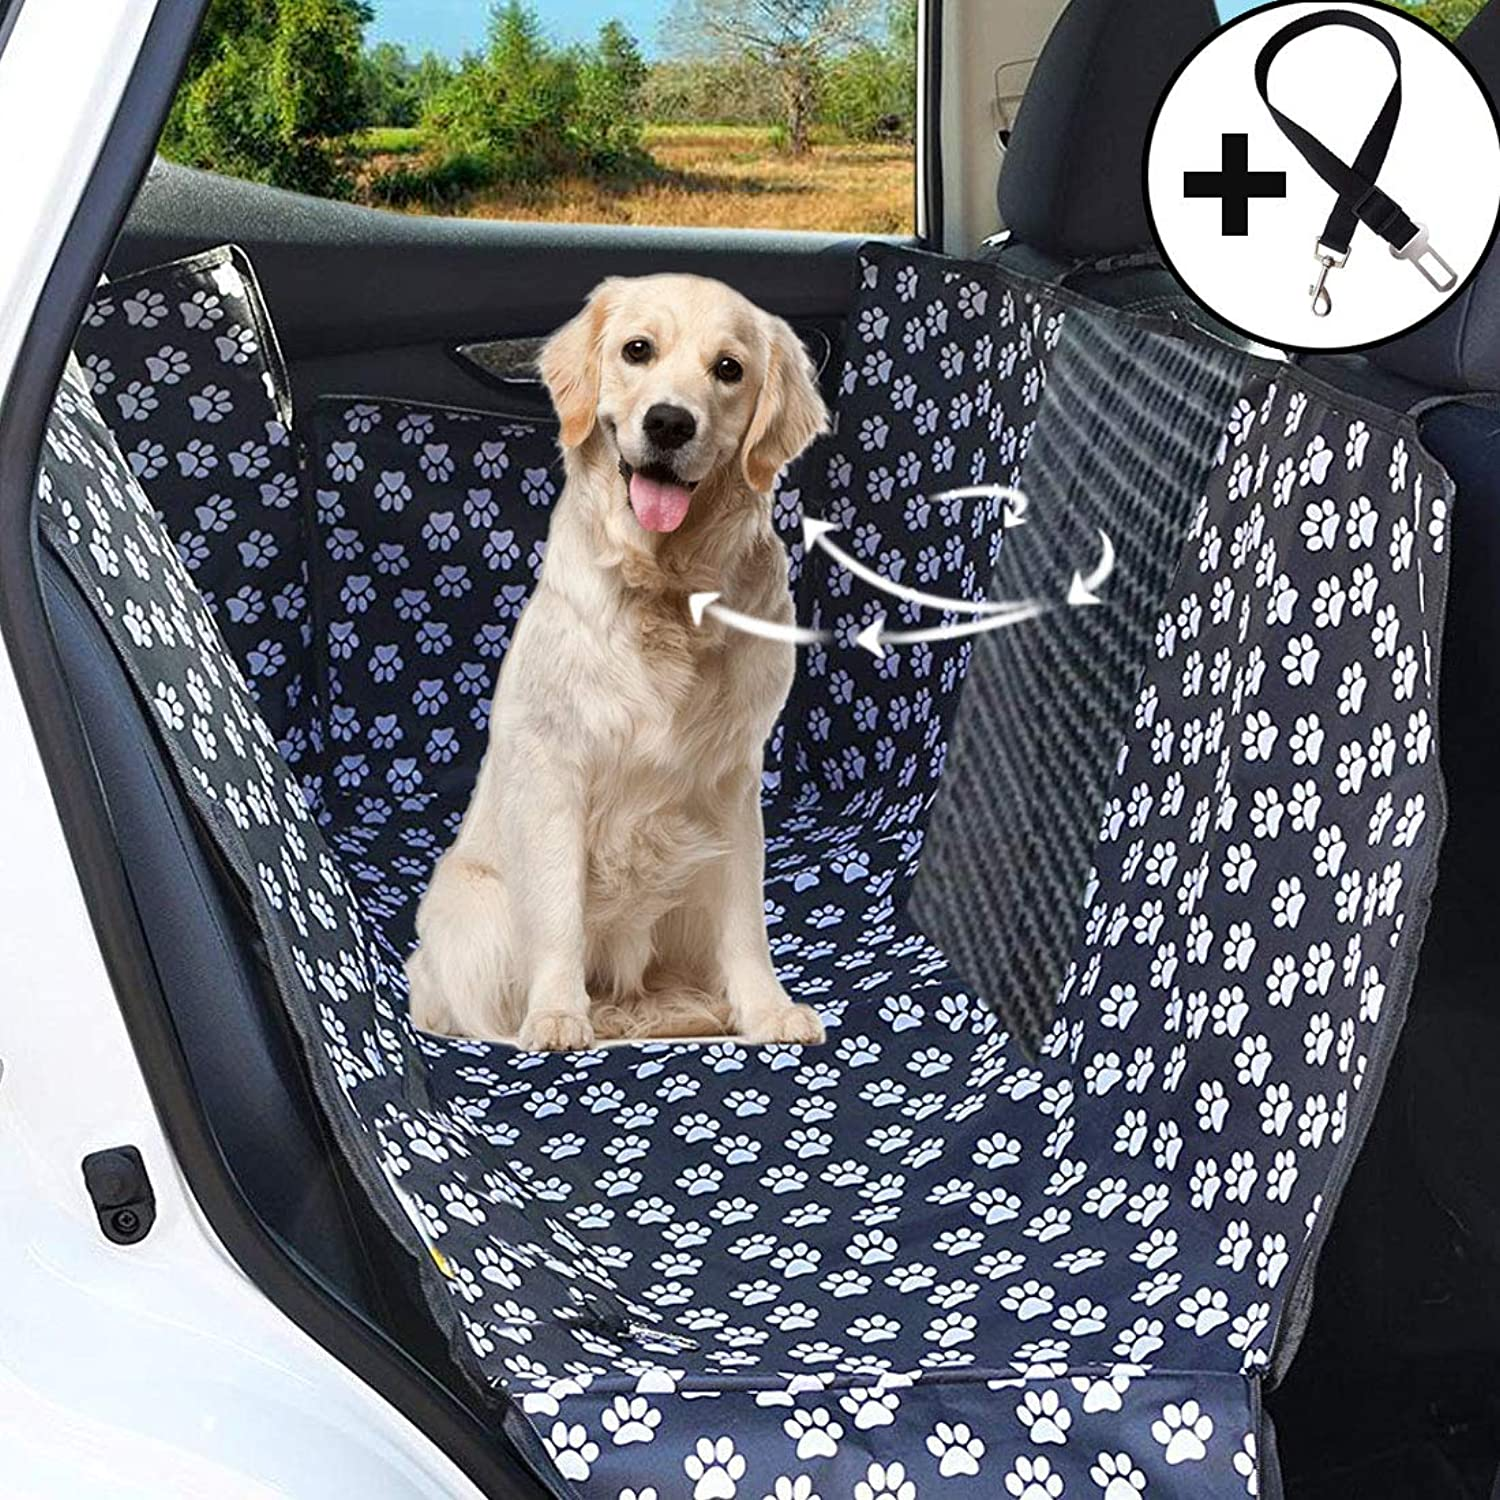 Big Hippo Dog Seat Cover,Waterproof Dog Car Seat Cover Predect Seat from Dirty Hair  Dog Hammock Pet Car Seat Cover with Air Circulation Mesh Window for Cars, Trucks, and SUV (Black)